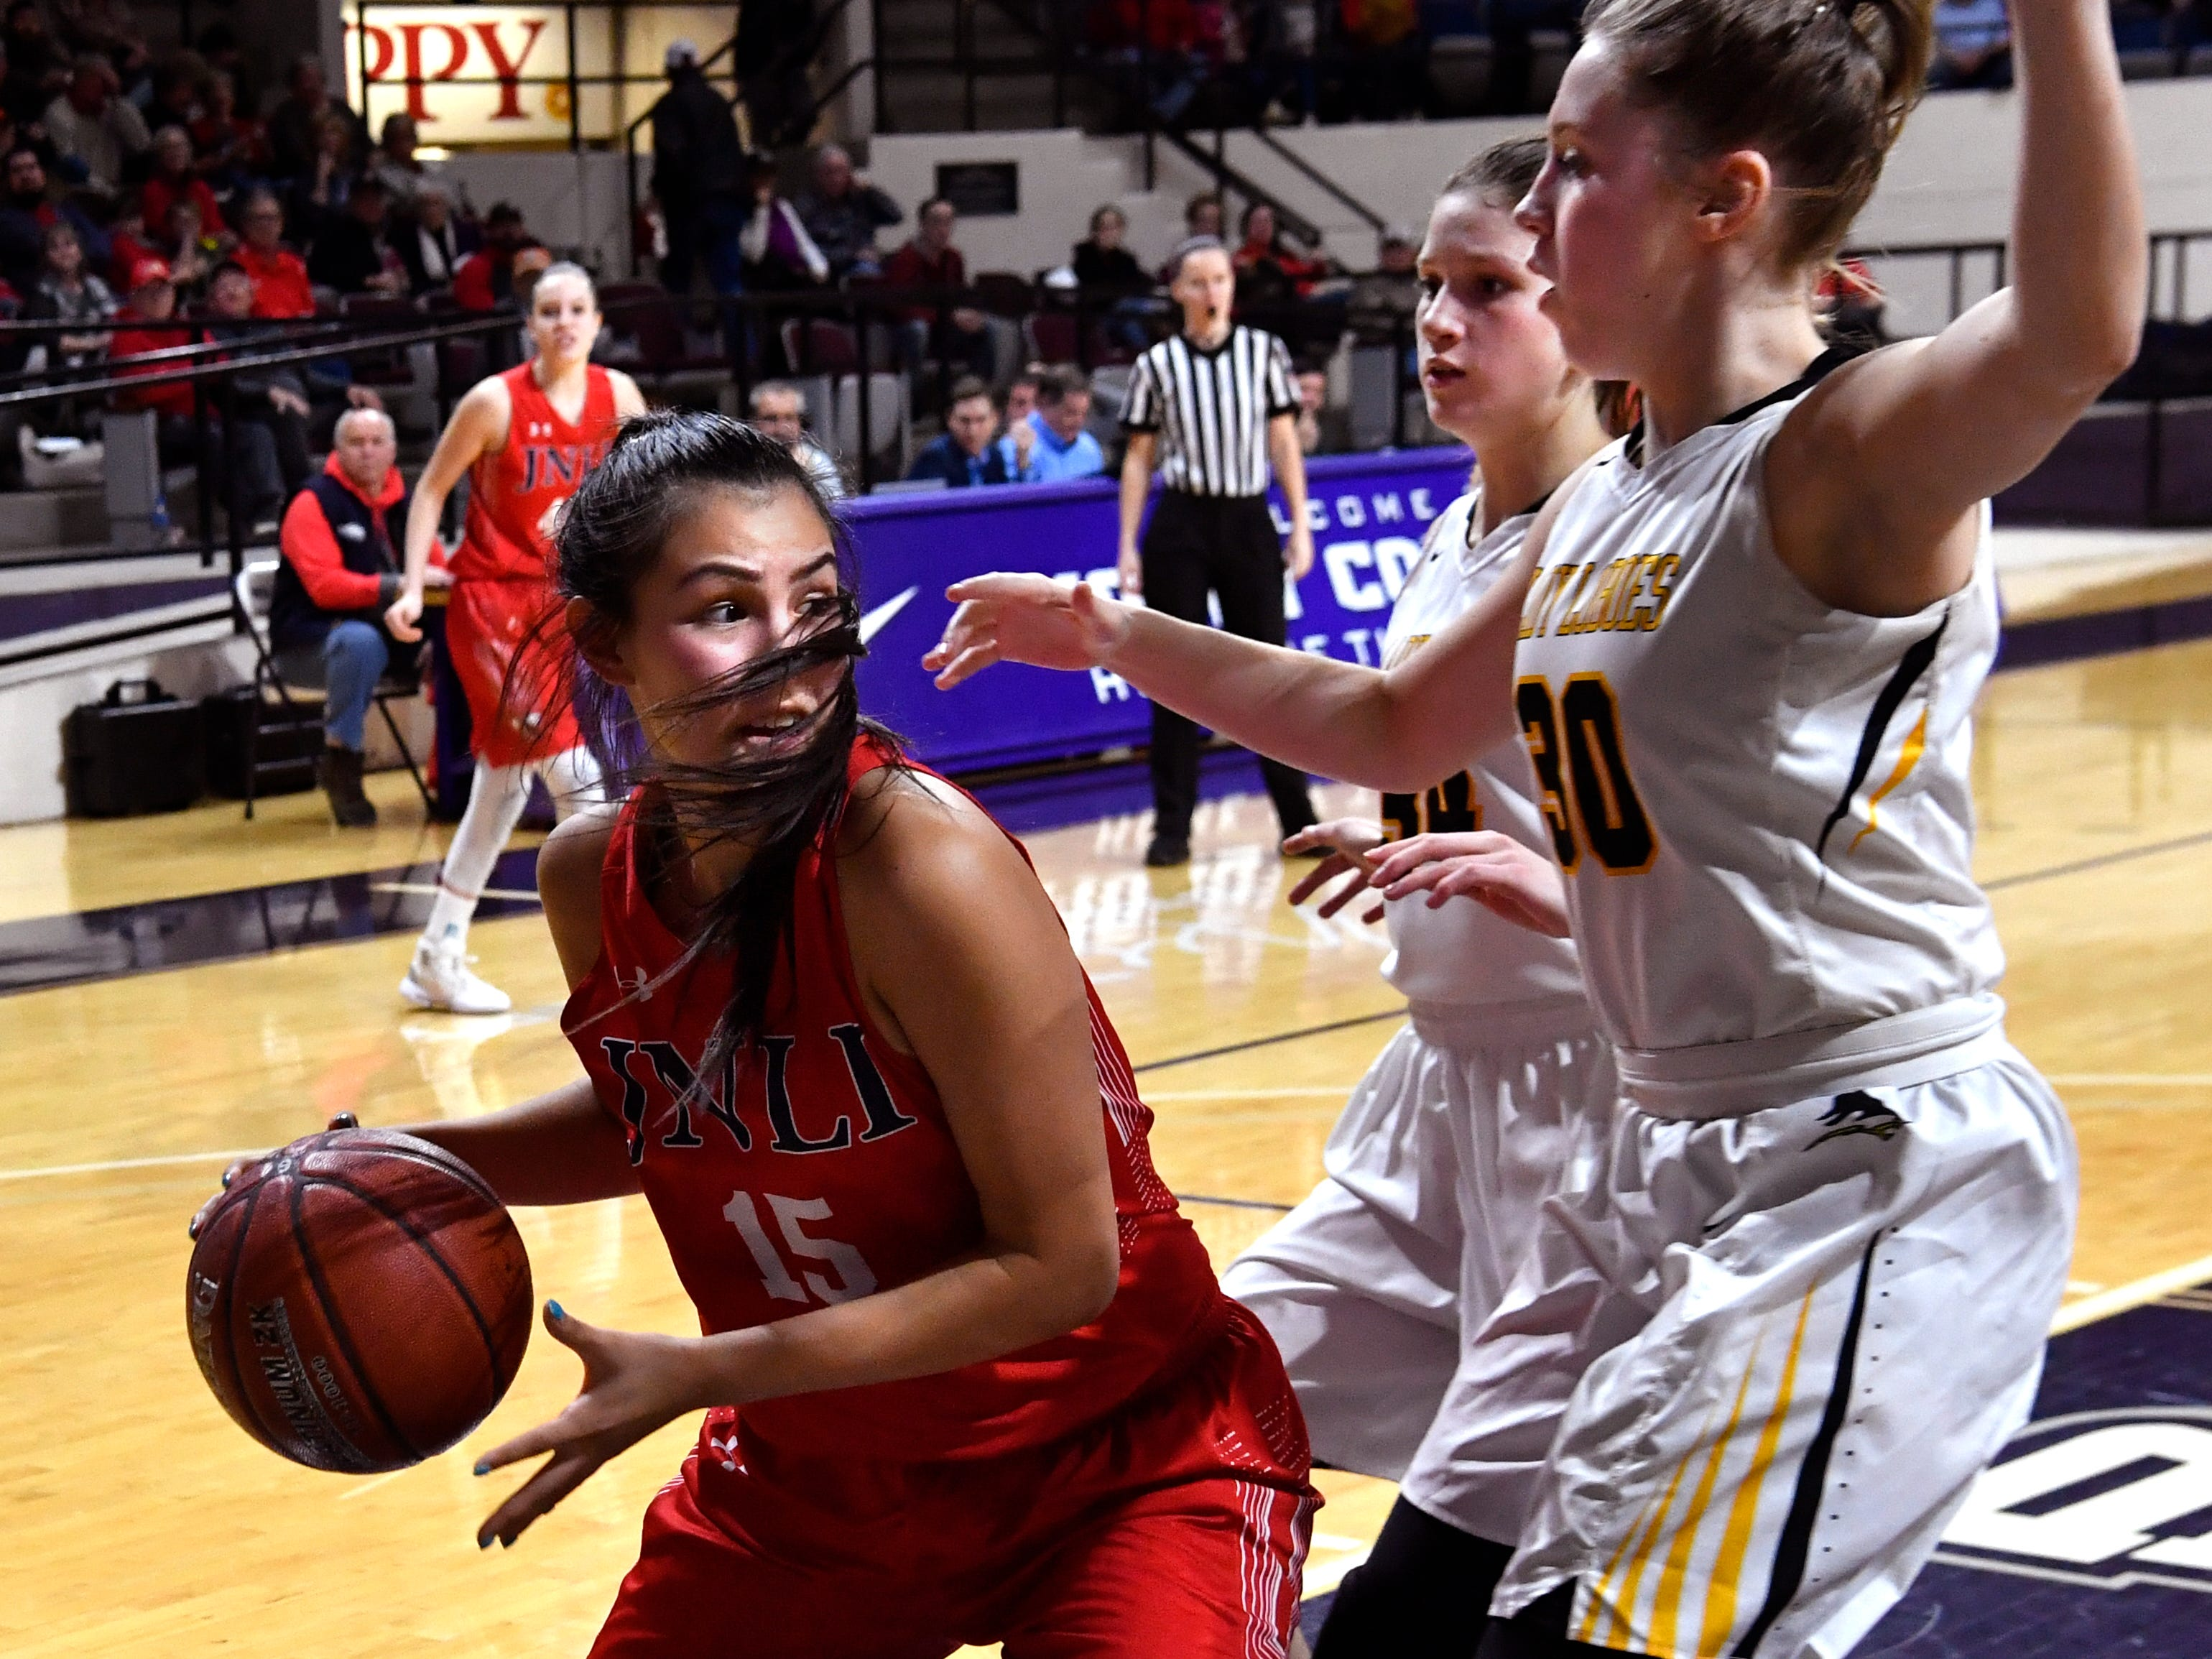 Jim Ned's Alexis Espinosa closes on the basket during Tuesday's Region 1 3A basketball all quarter-finals at Abilene Christian University Feb. 19, 2019. Final score was 46-31, Jim Ned.